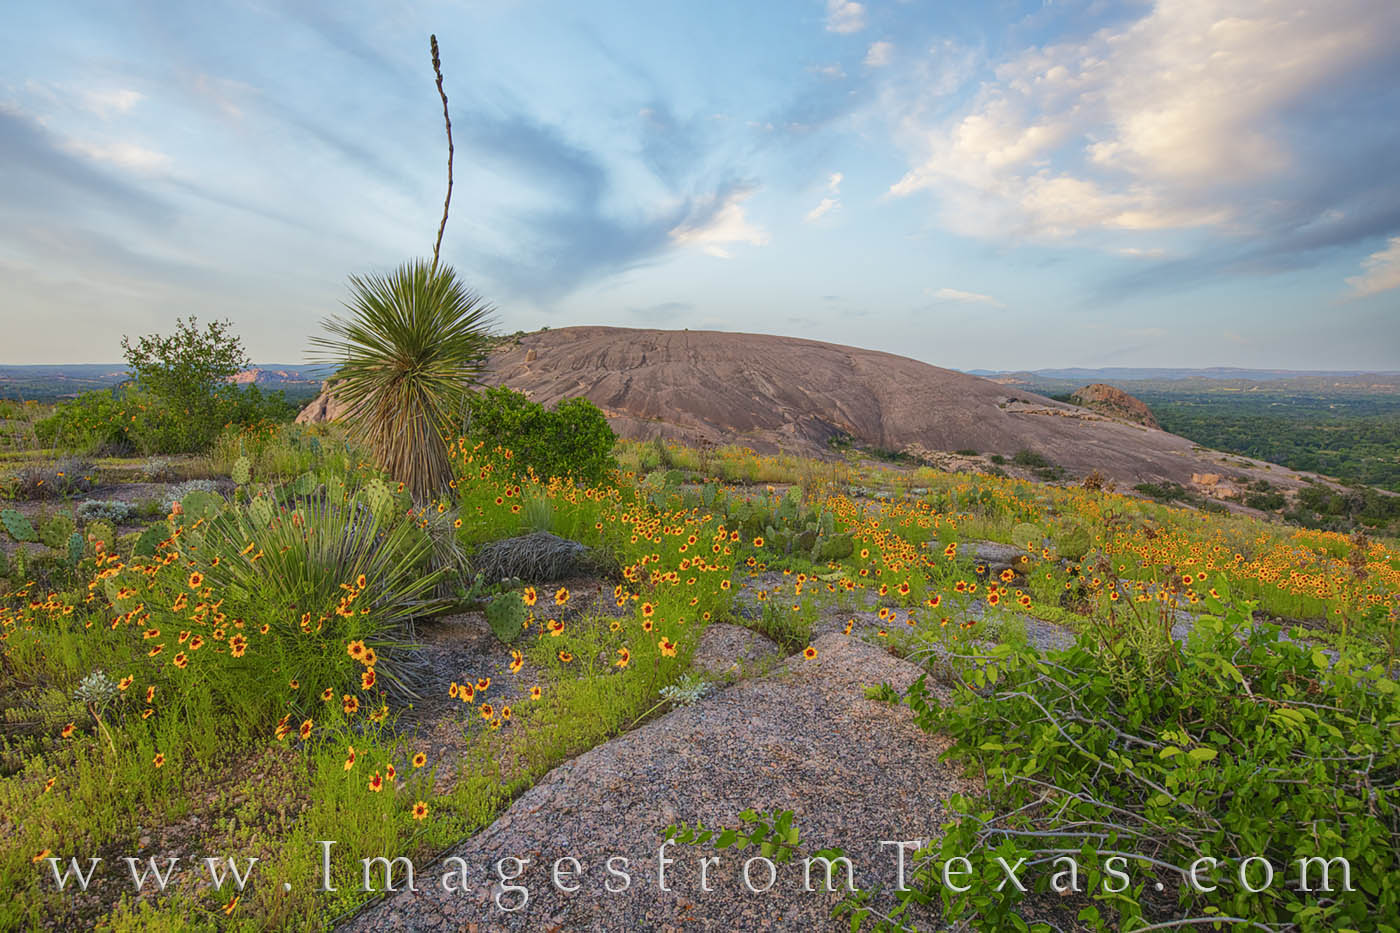 enchanted rock, wildflowers, spring, texas hill country, spring, yellow, yucca, prints for sale, photography, photo